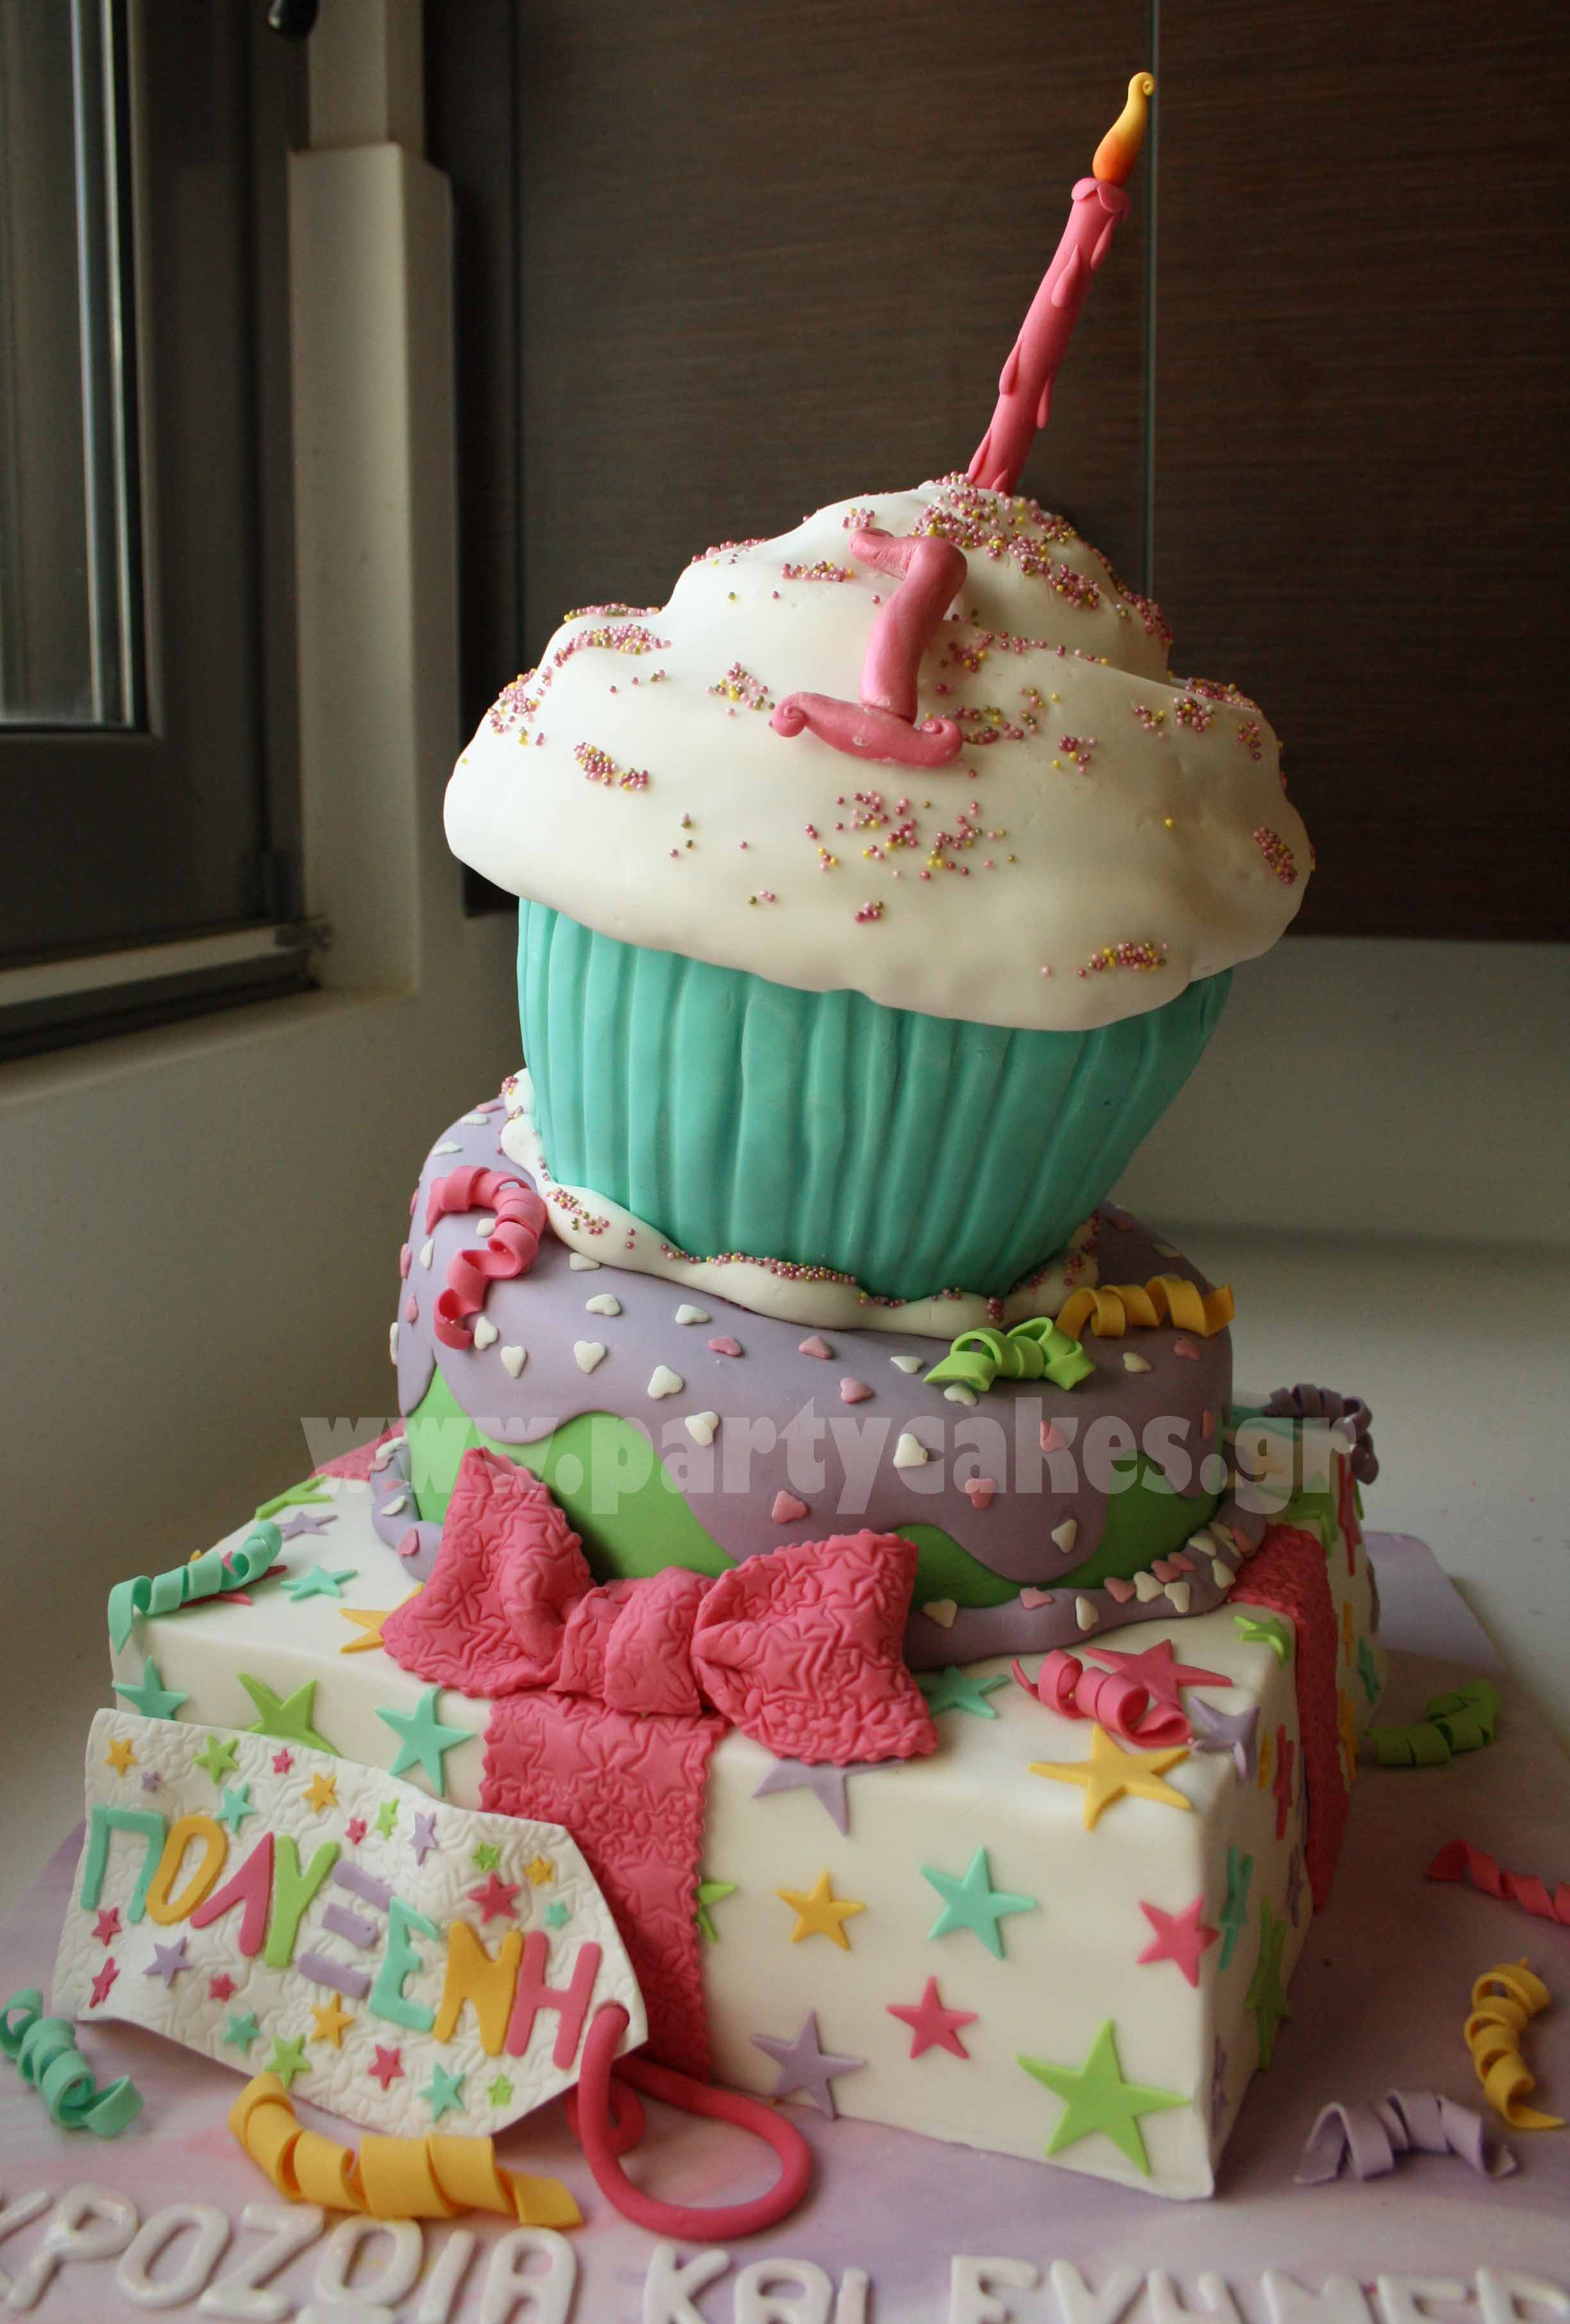 Giant+cupcake+stack+1+copy.jpg